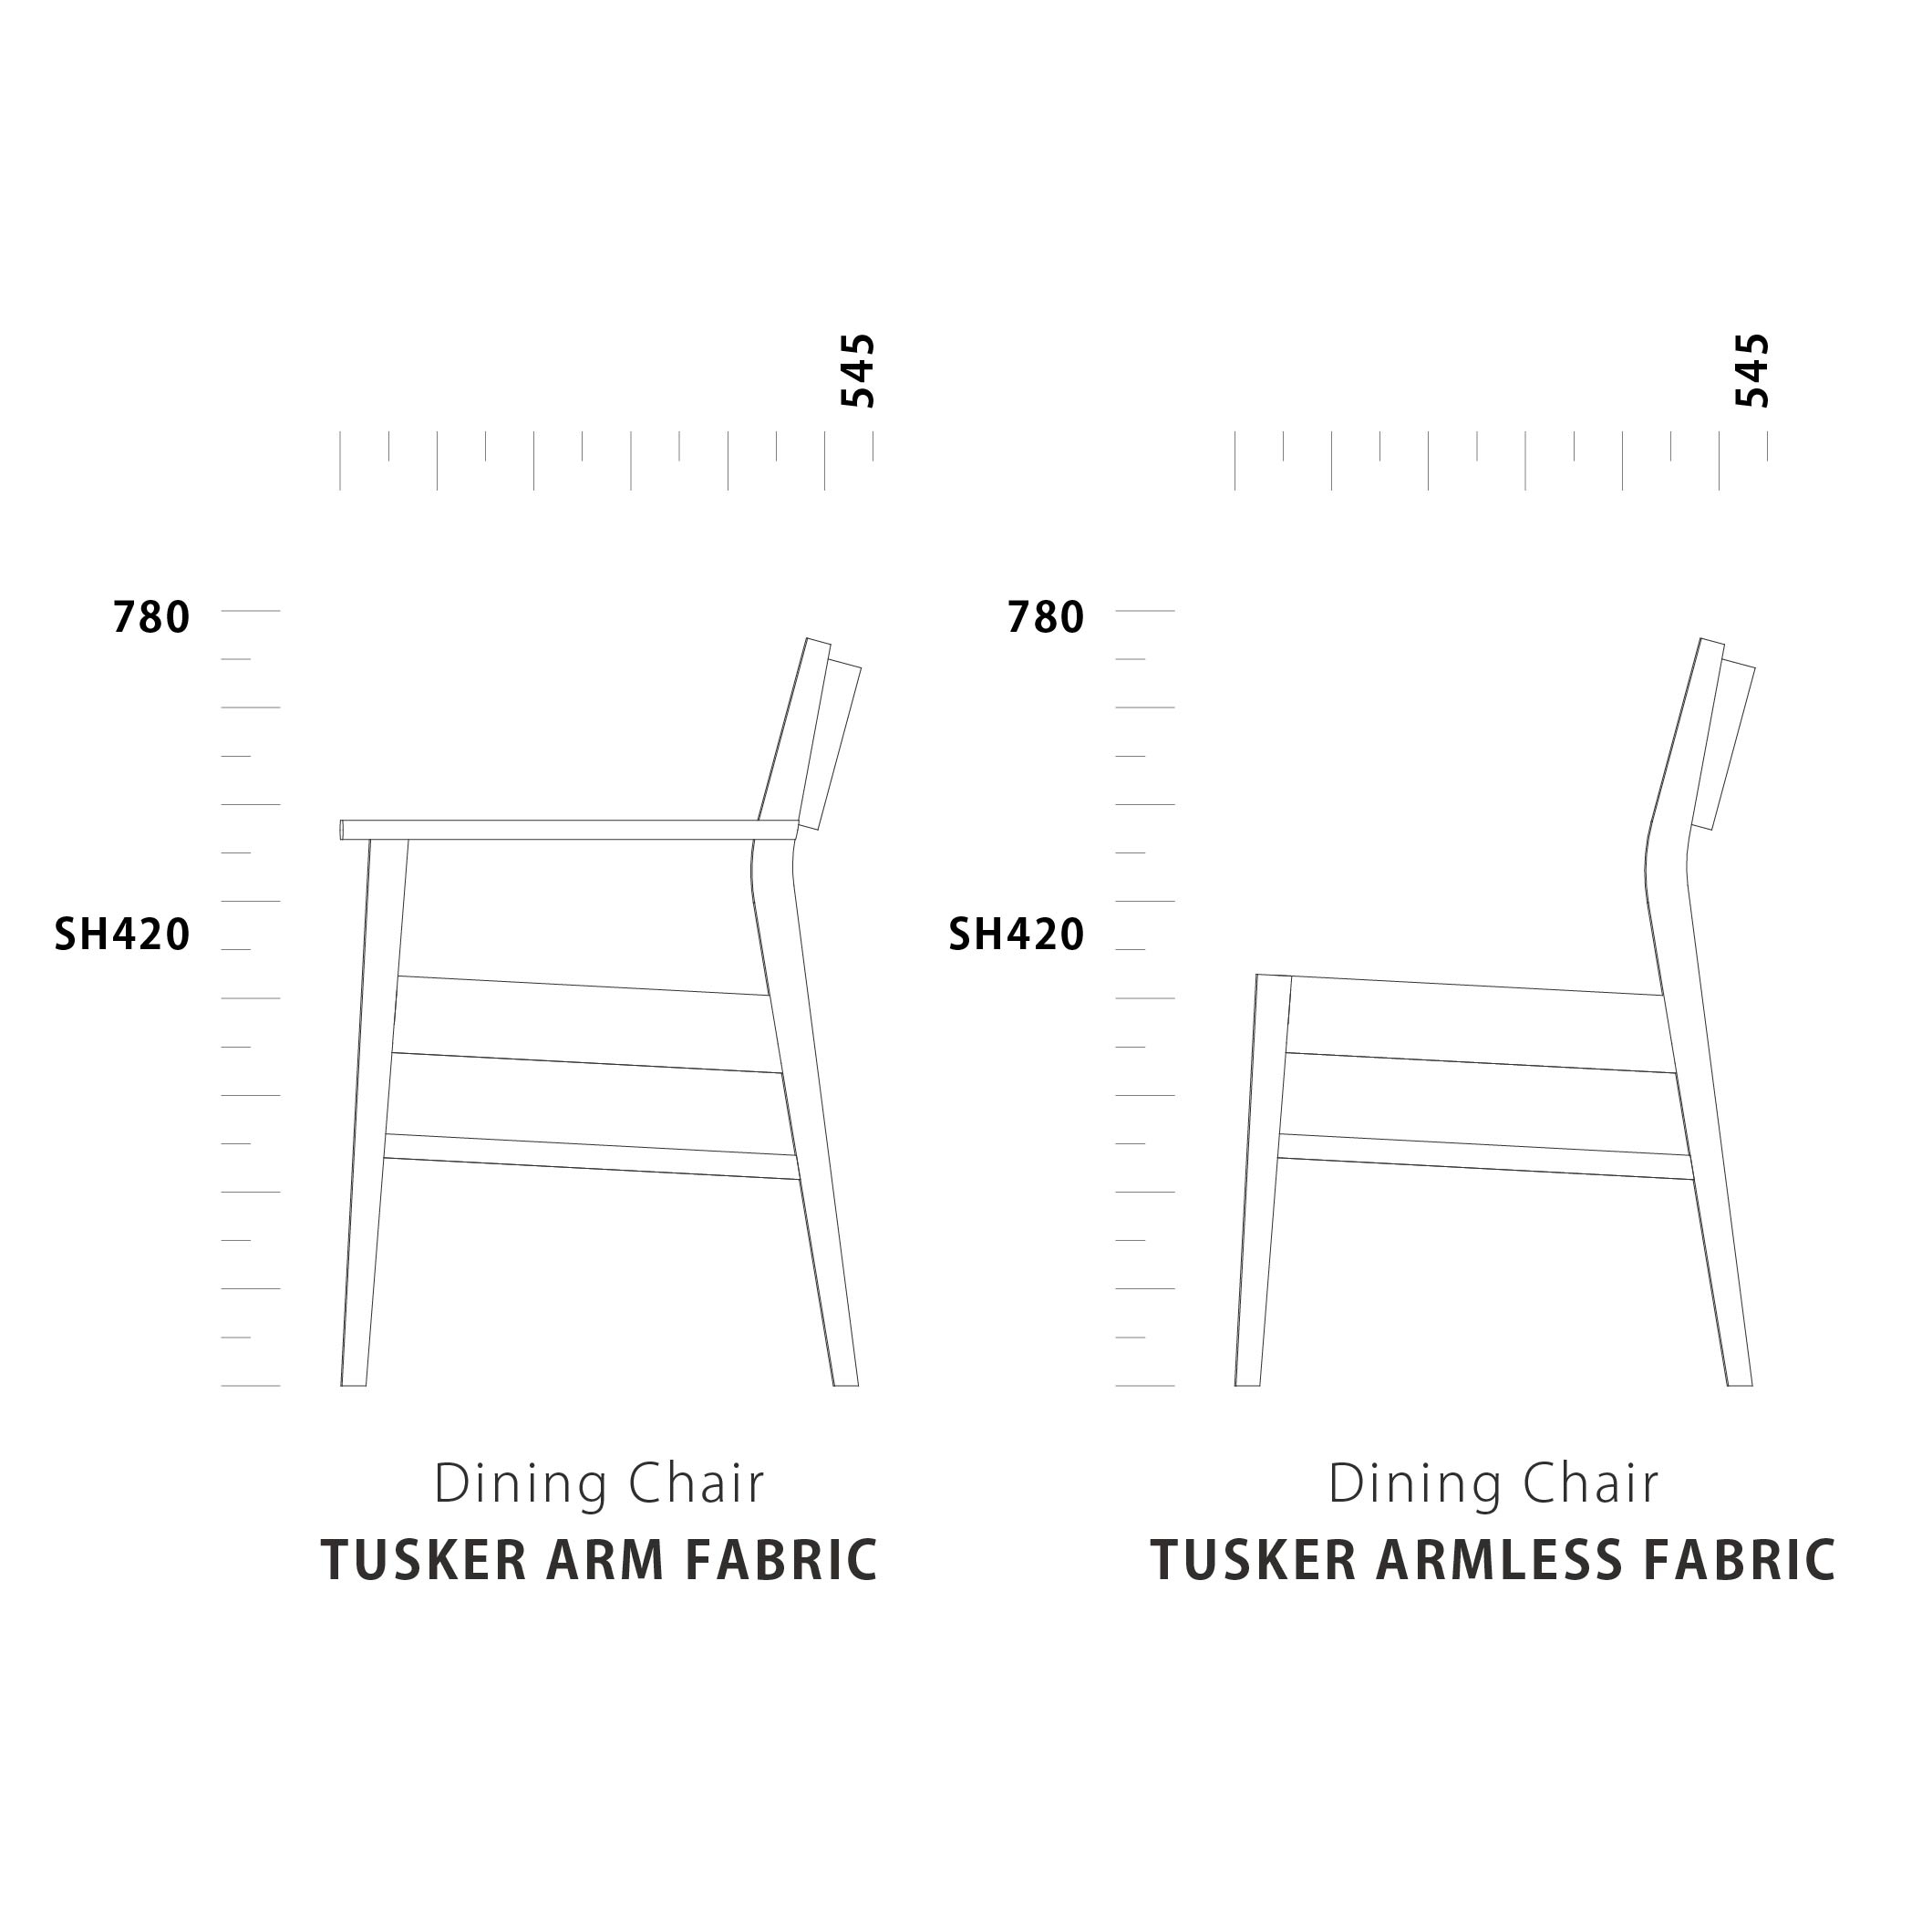 Dining Chair TUSKER Fabric